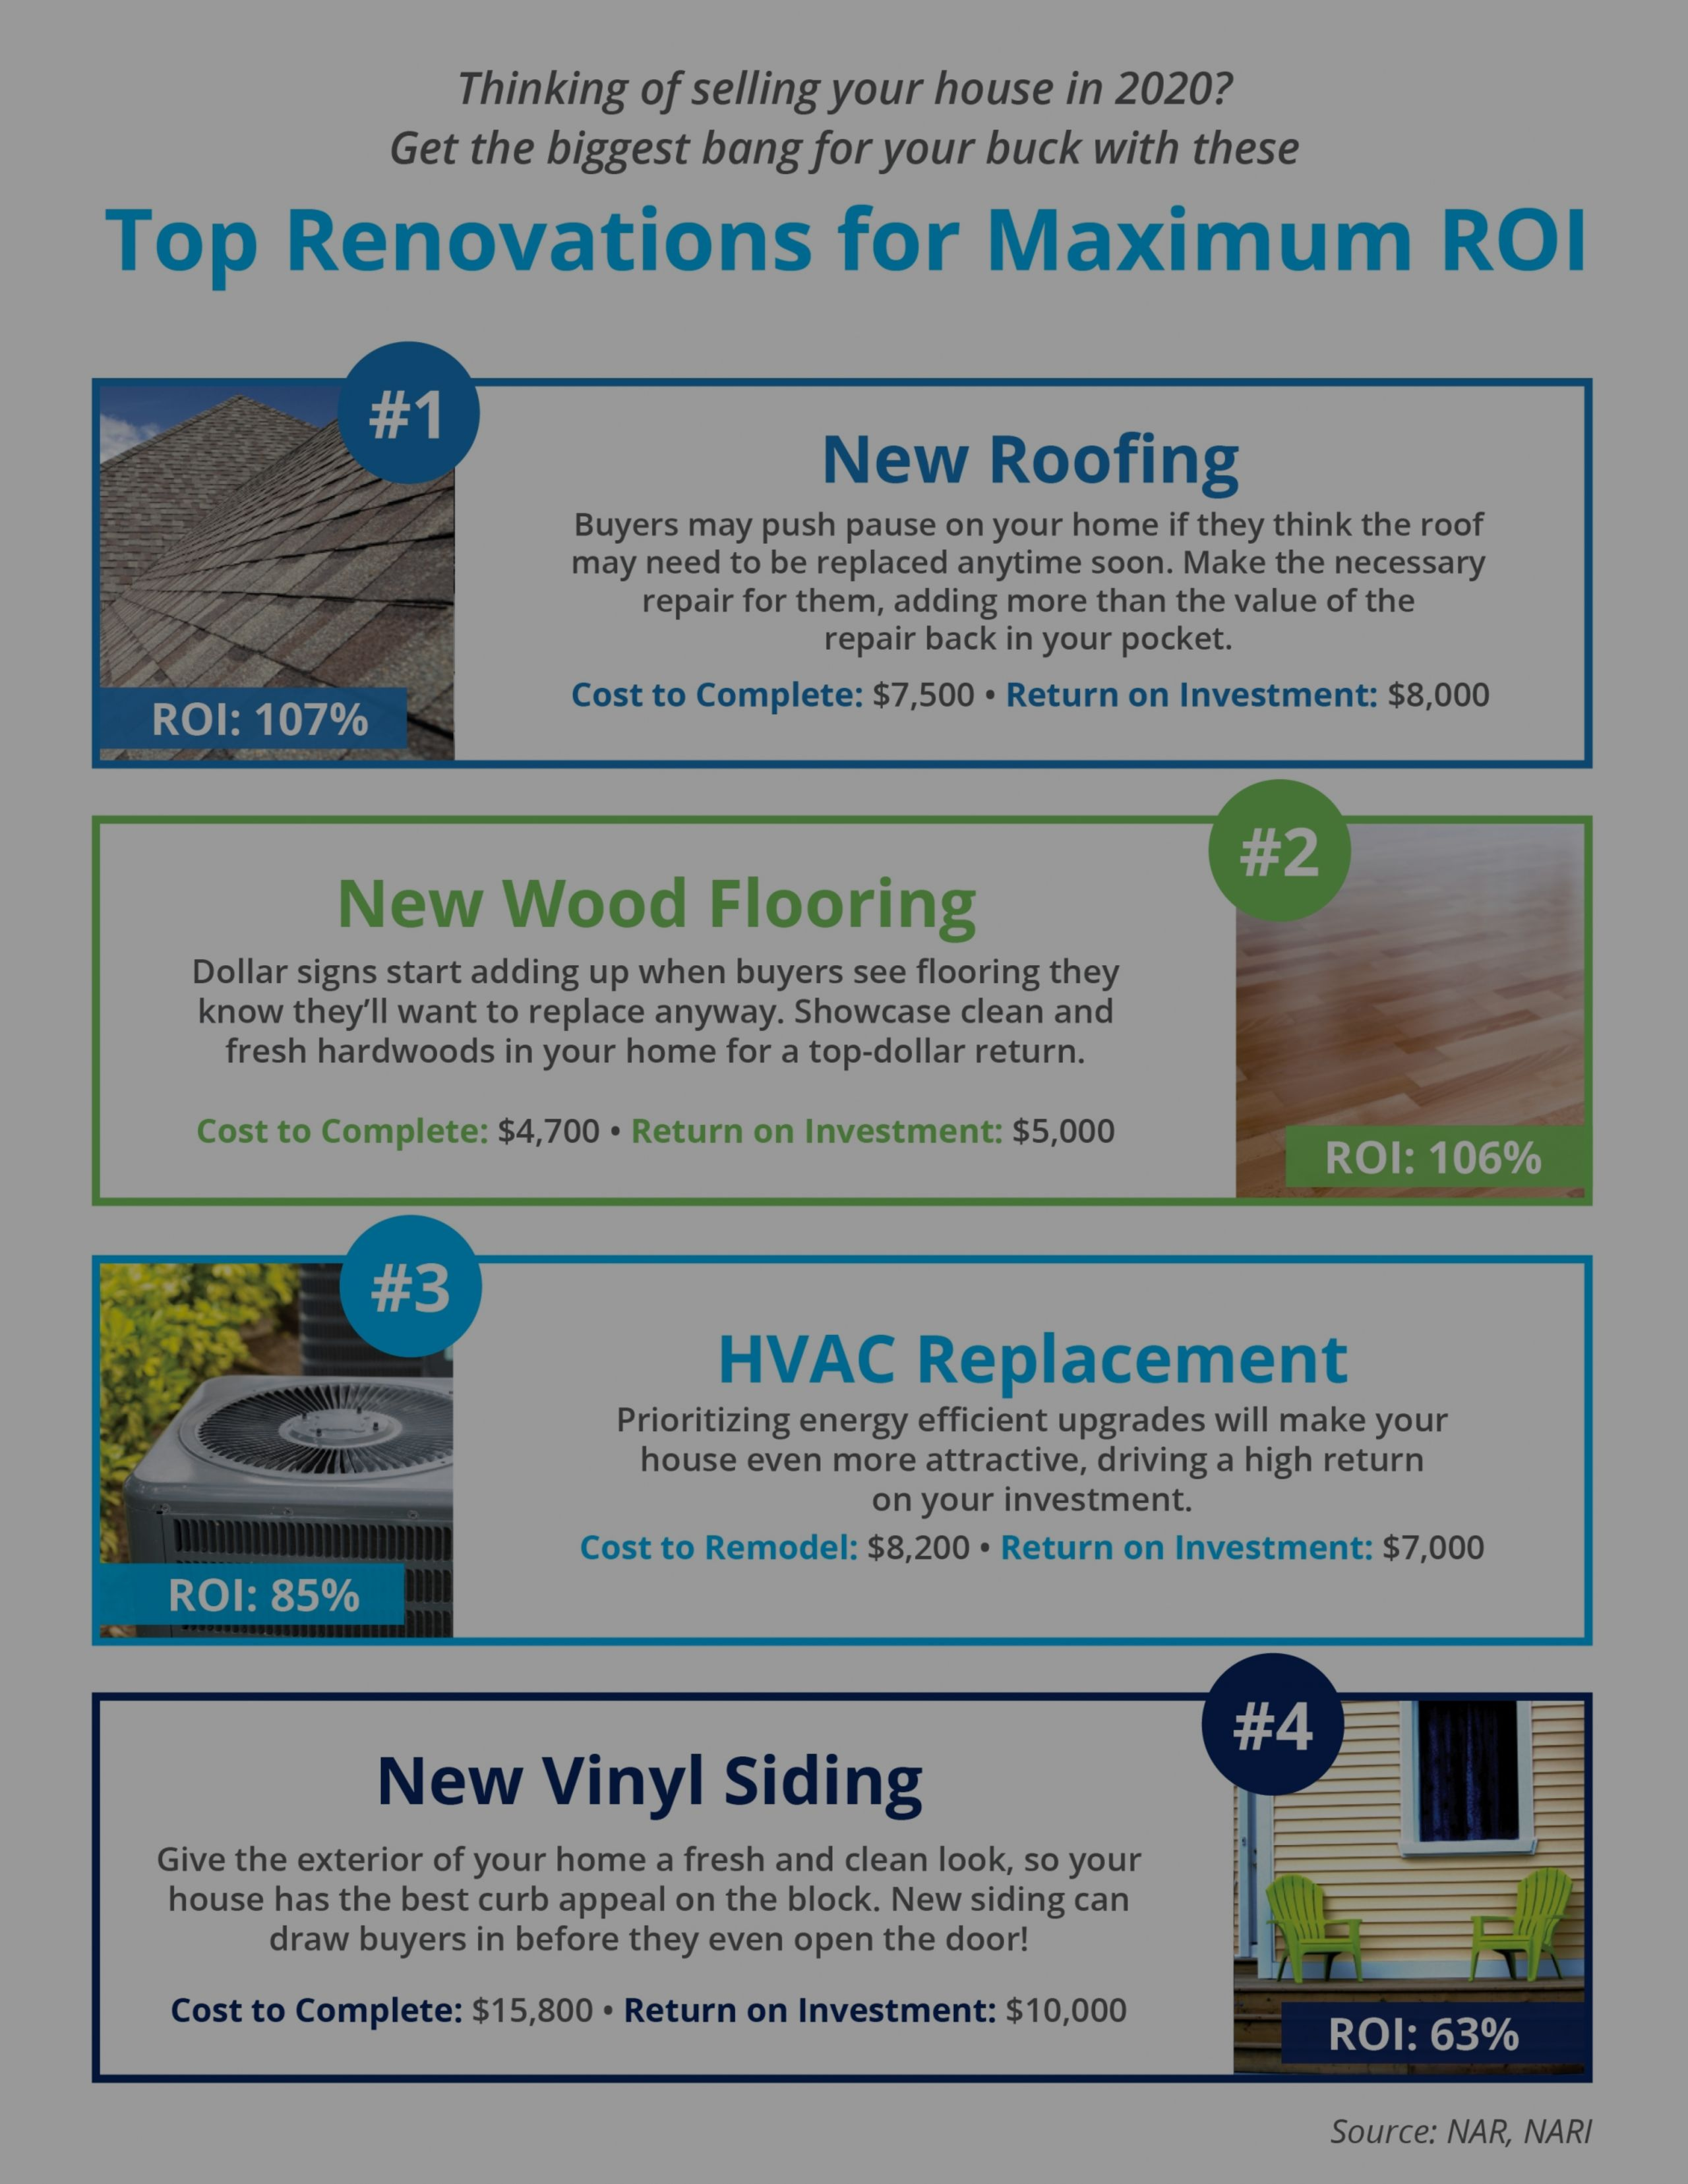 Top Renovations for Return on Investment